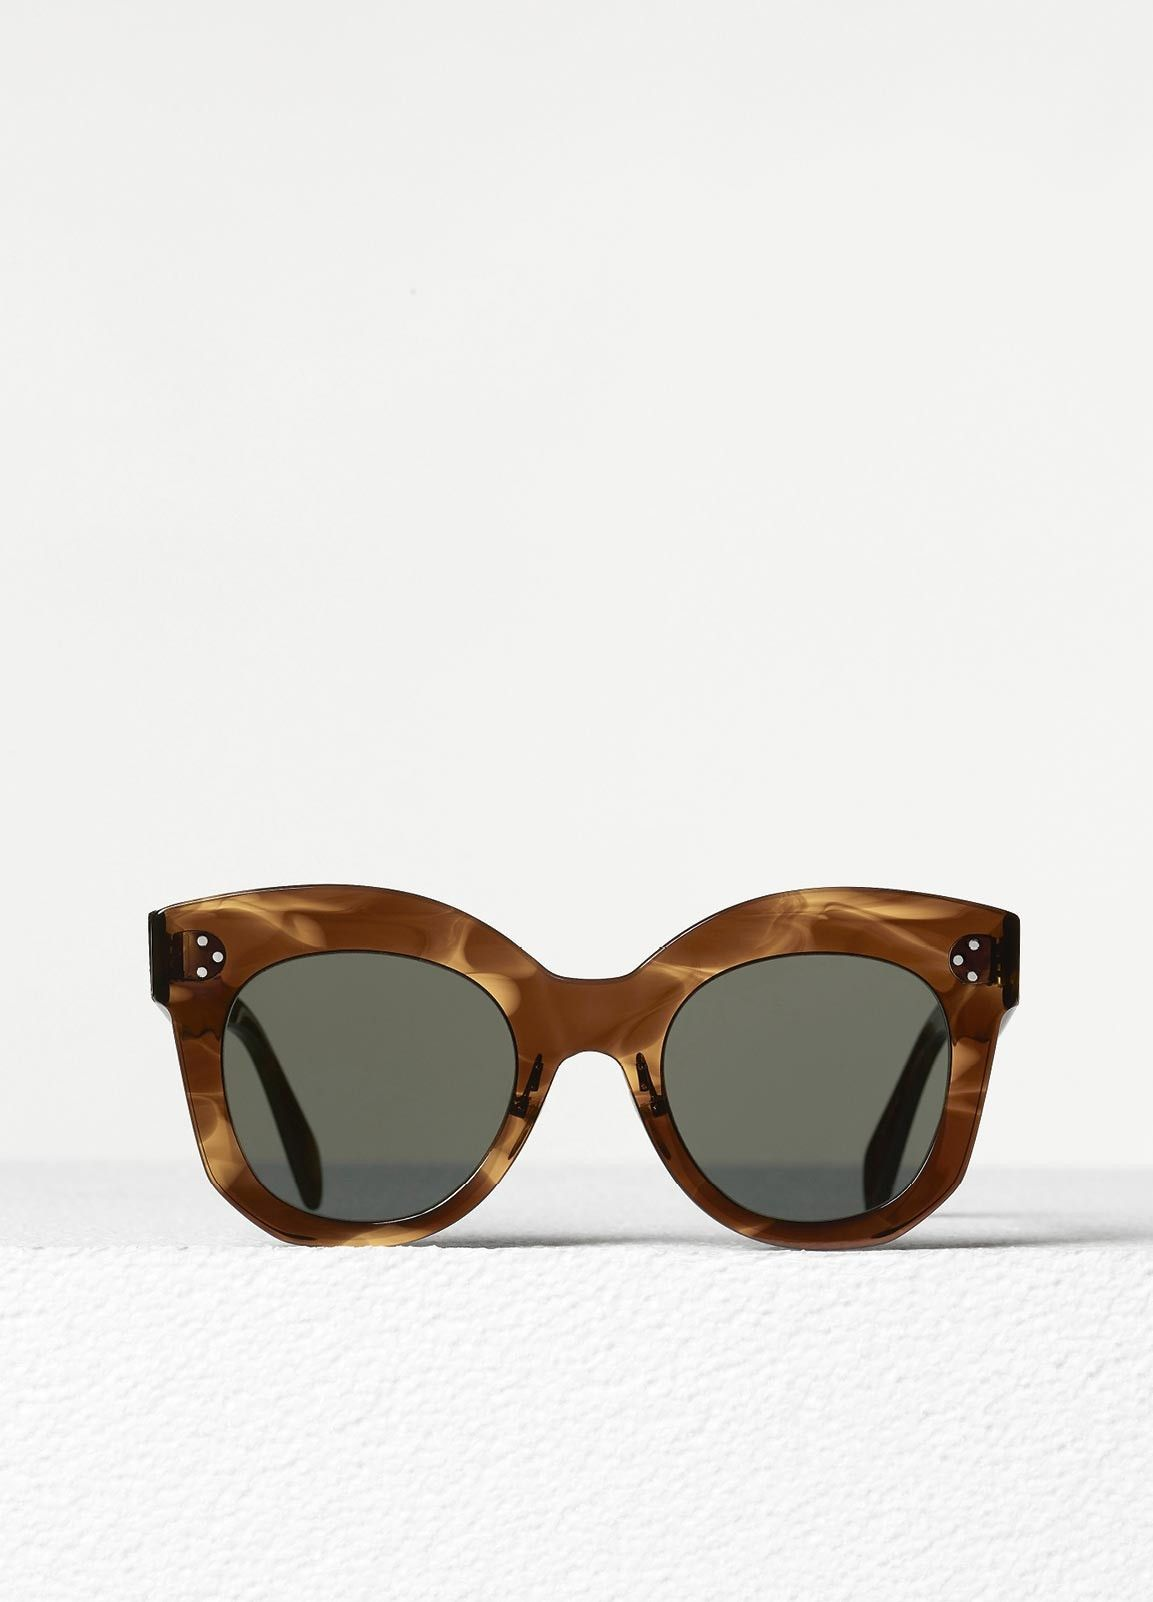 9ffcd71dbb Chris Sunglasses in Acetate - Céline